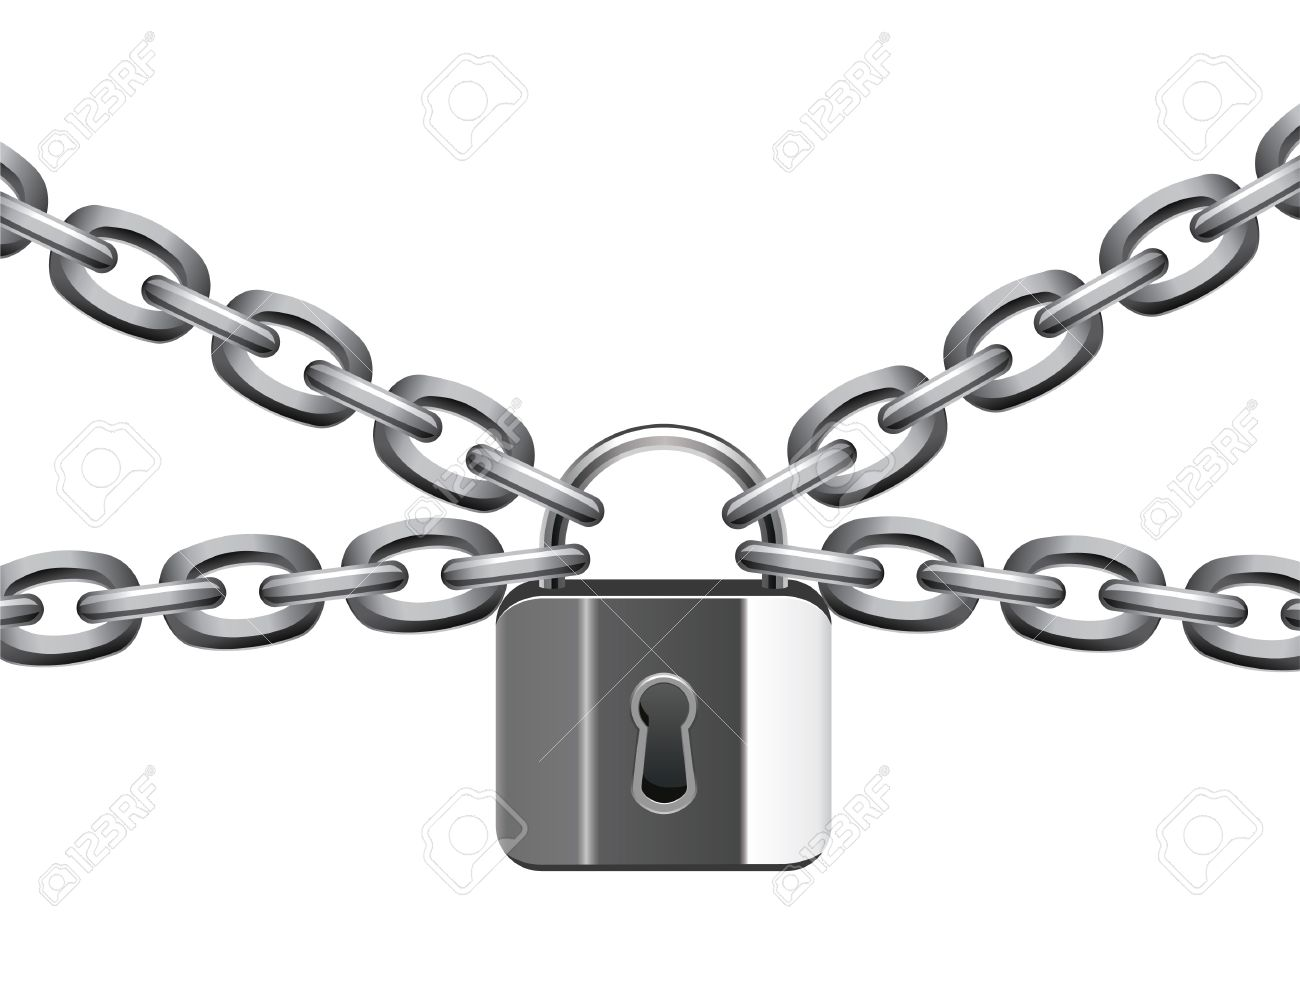 vector illustration of metal chain and padlock Stock Vector - 9653607